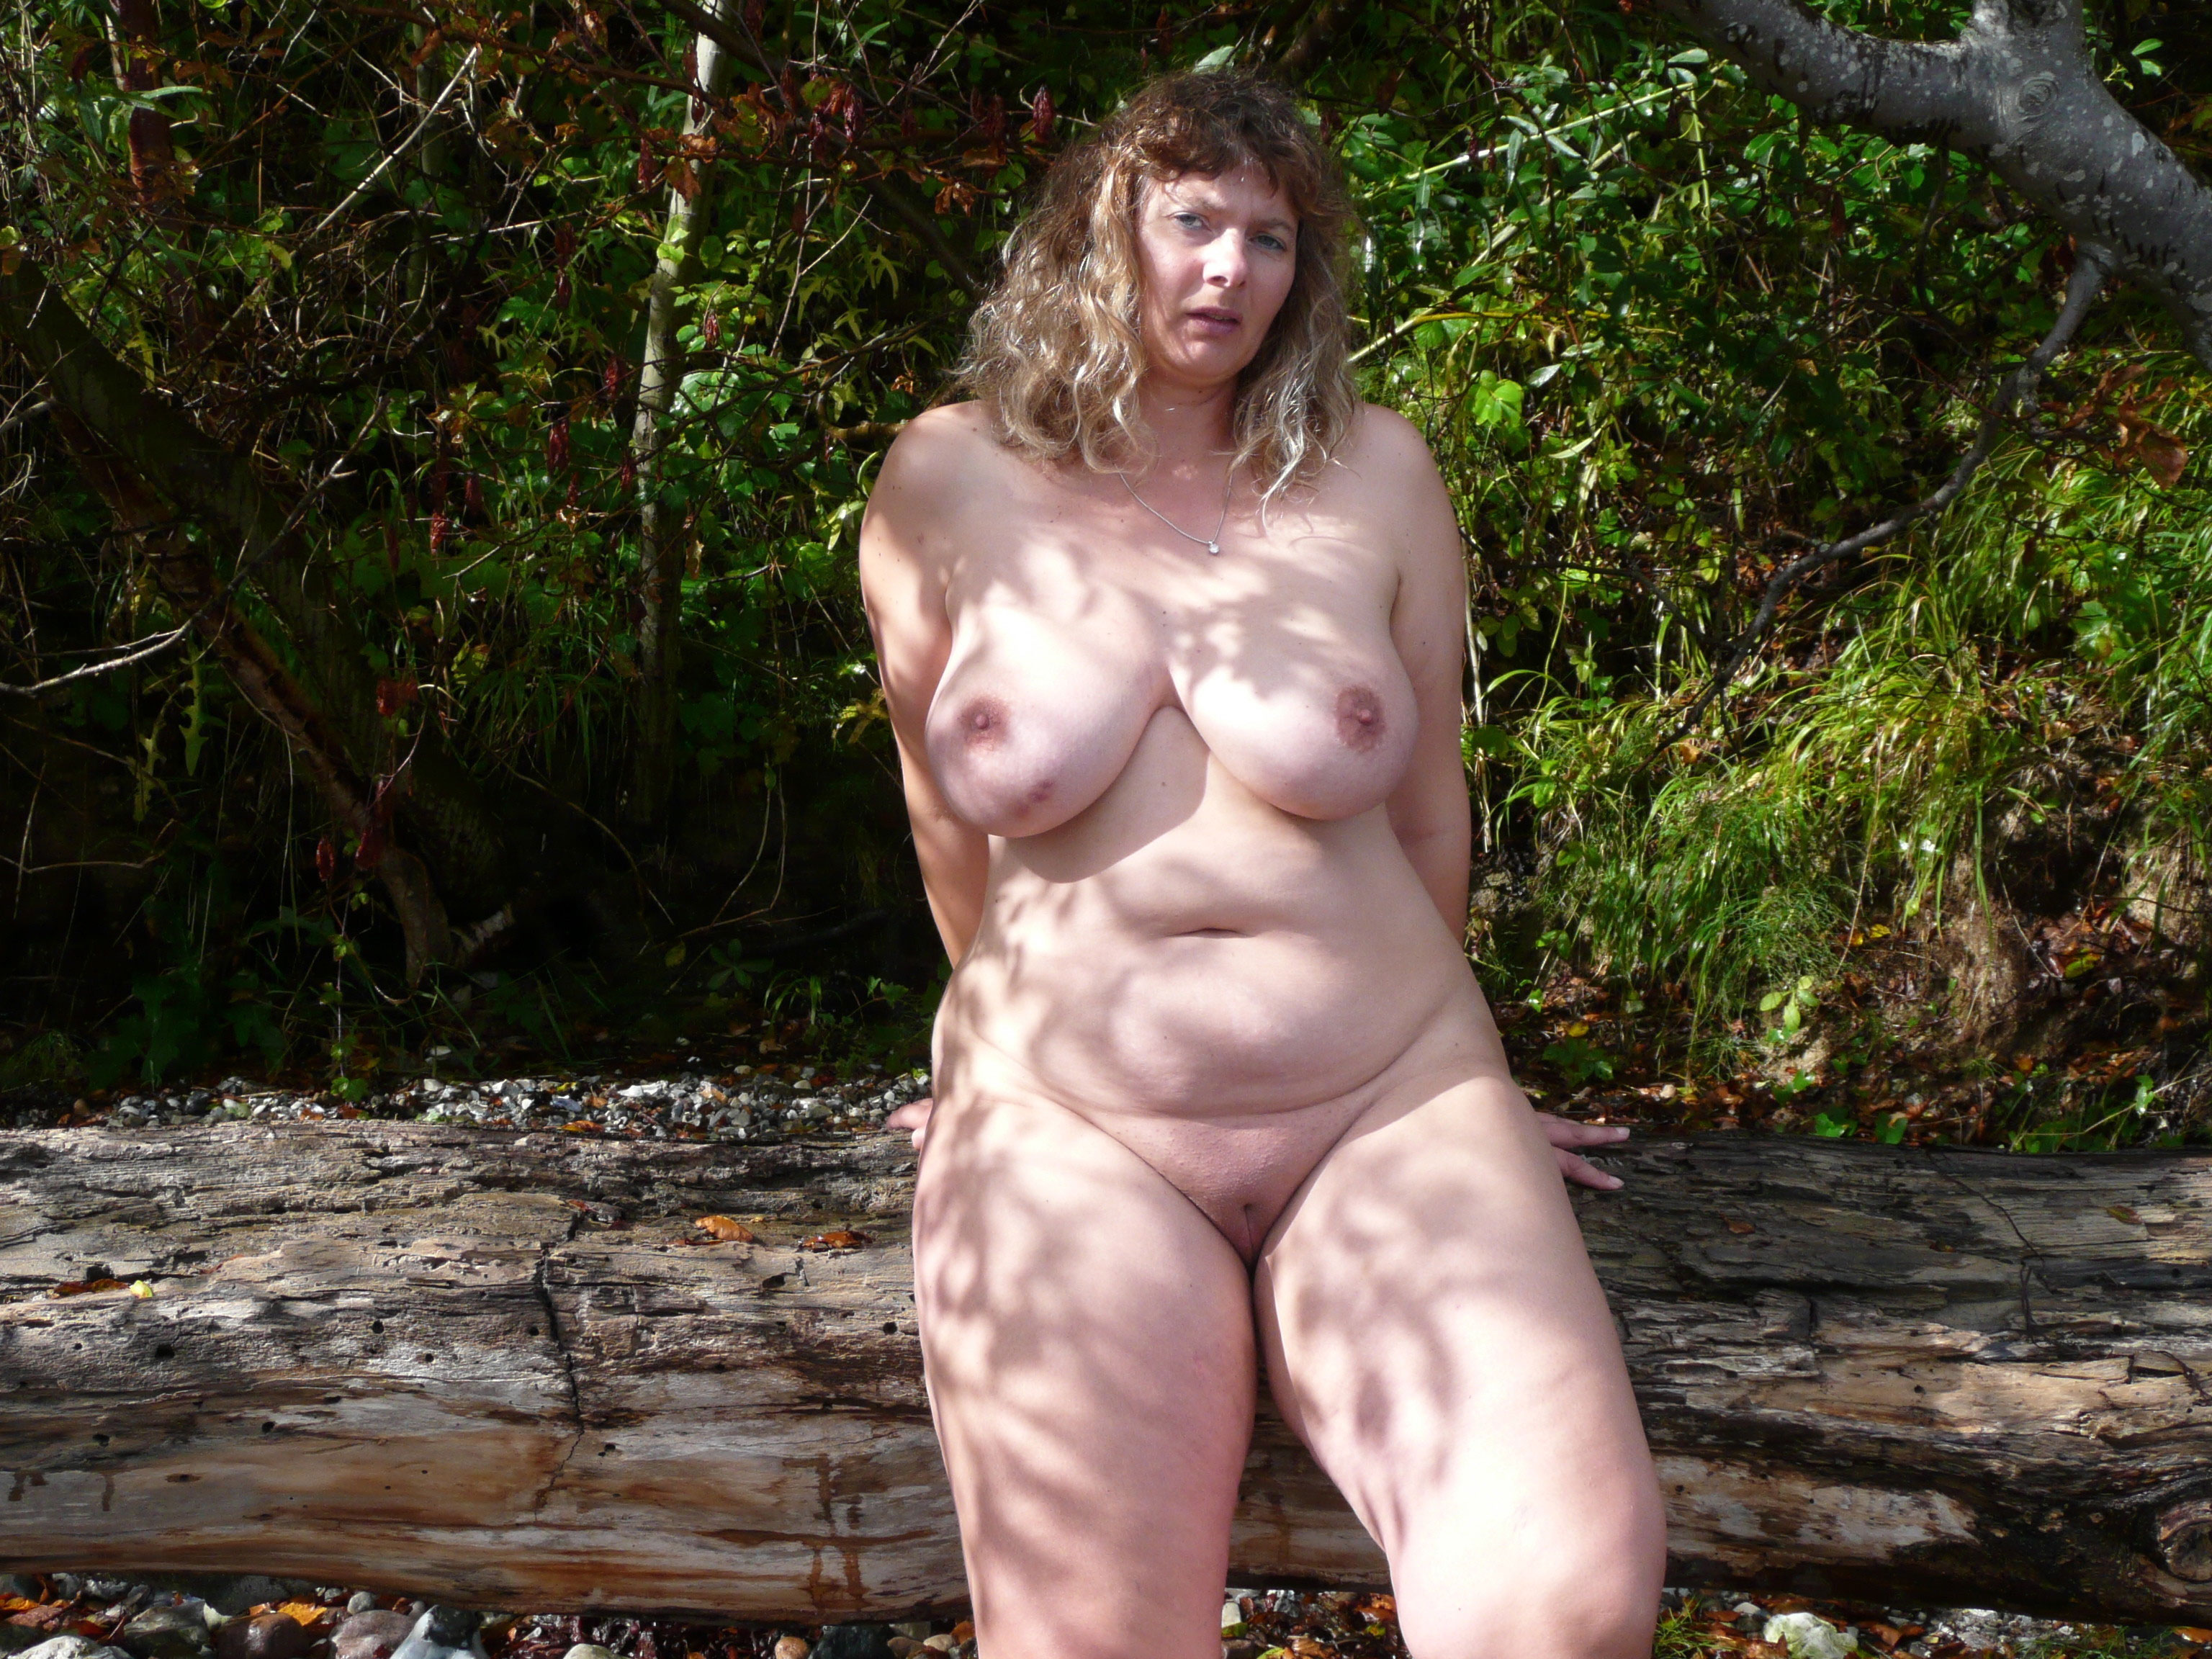 Chubby mature nudists, free hottest hairy milf